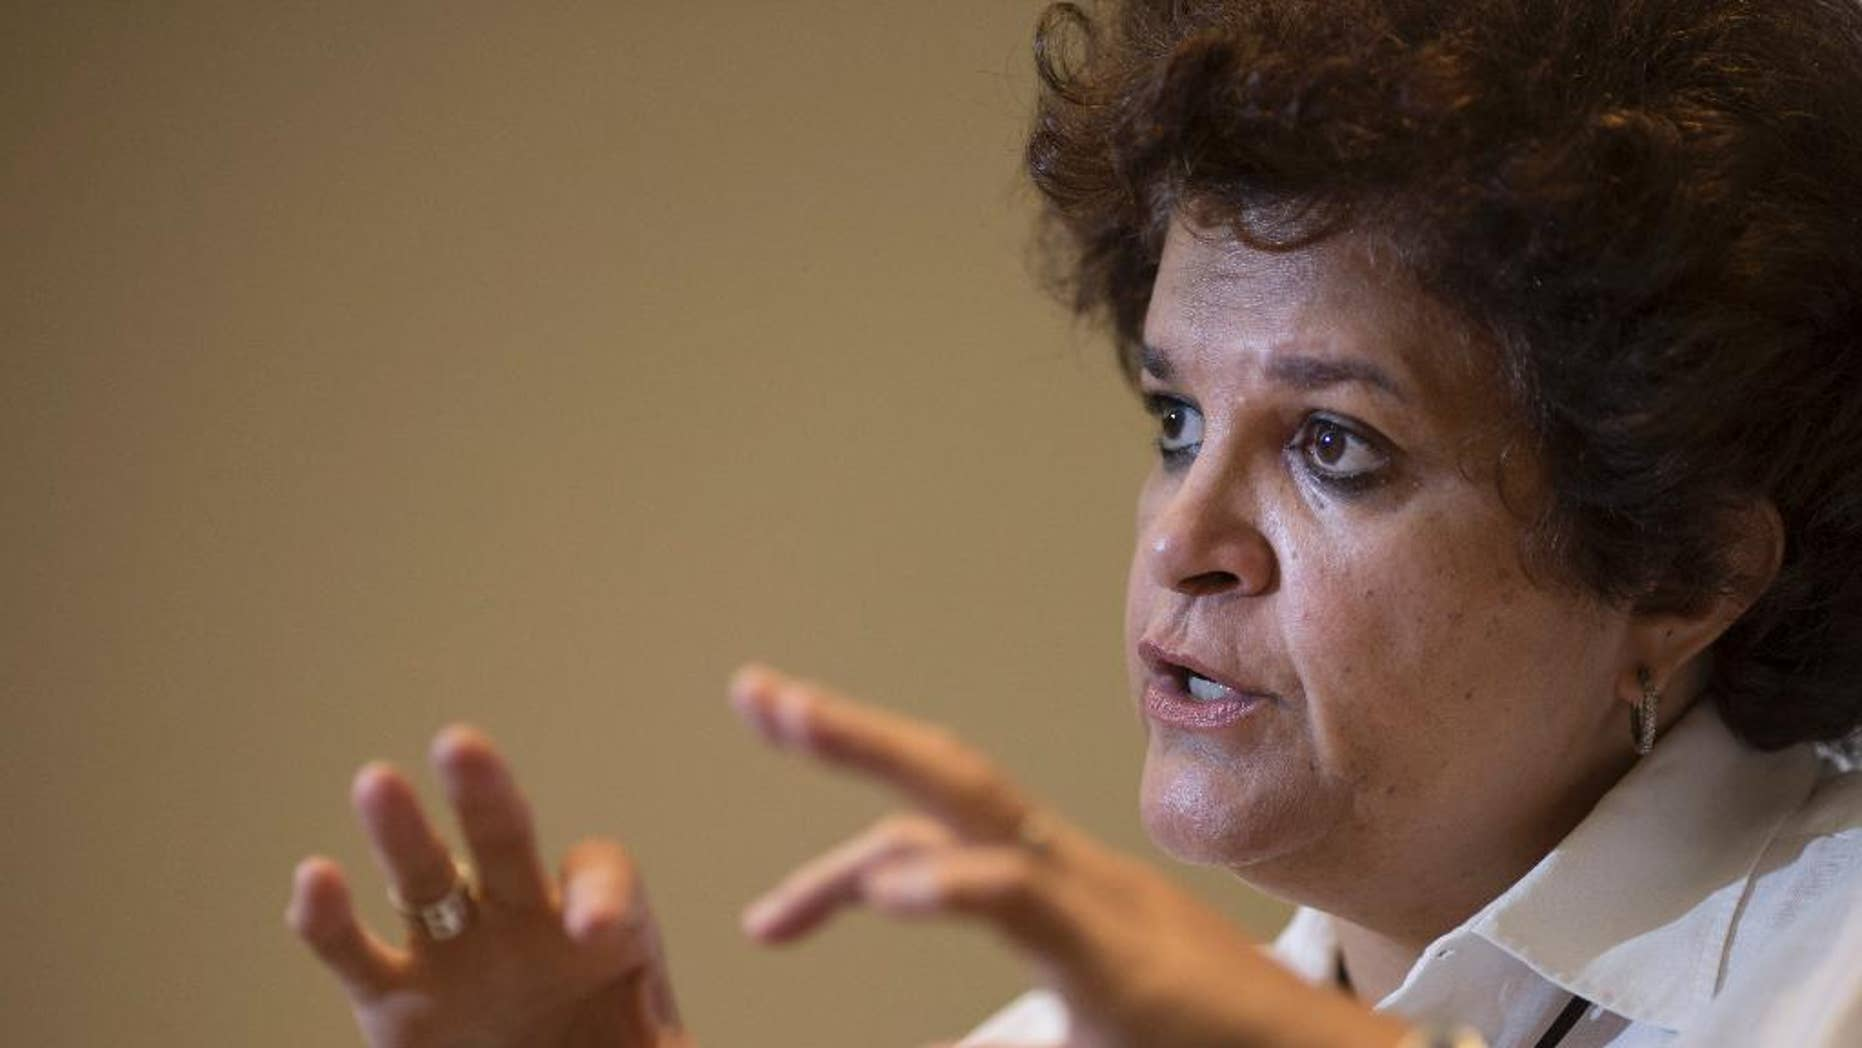 Brazil's Environment Minister Izabella Teixeira speaks during an interview in Rio de Janeiro, Brazil, Wednesday, Nov. 5, 2014. Teixeira says her nation will assume a protagonist role at a climate change conference in Peru, and will hold developed nations accountable for commitments to reduce carbon emissions. (AP Photo/Felipe Dana)